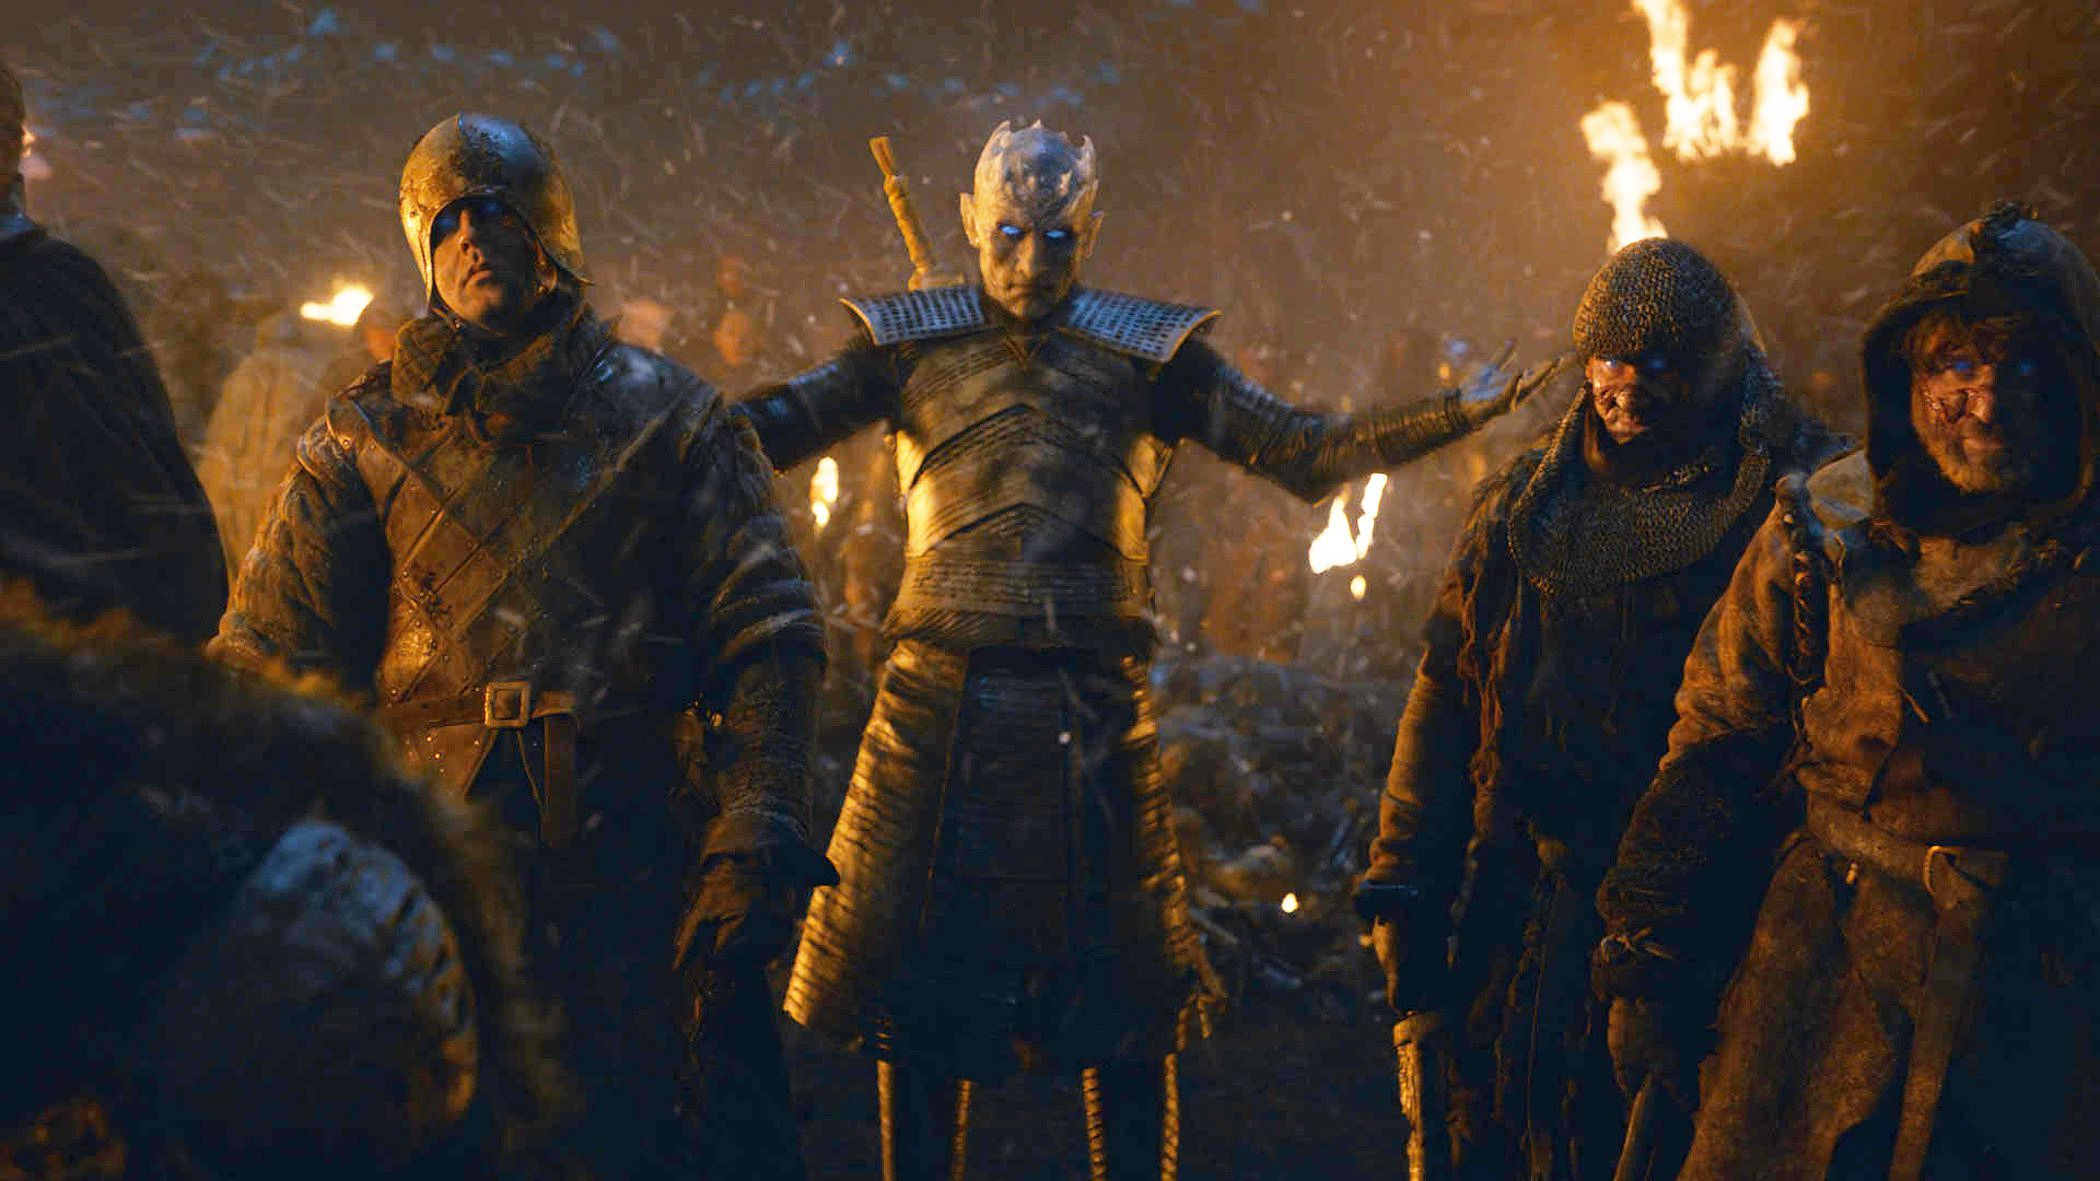 Game Of Thrones' Night King just made a great point about why he didn't fight Jon Snow